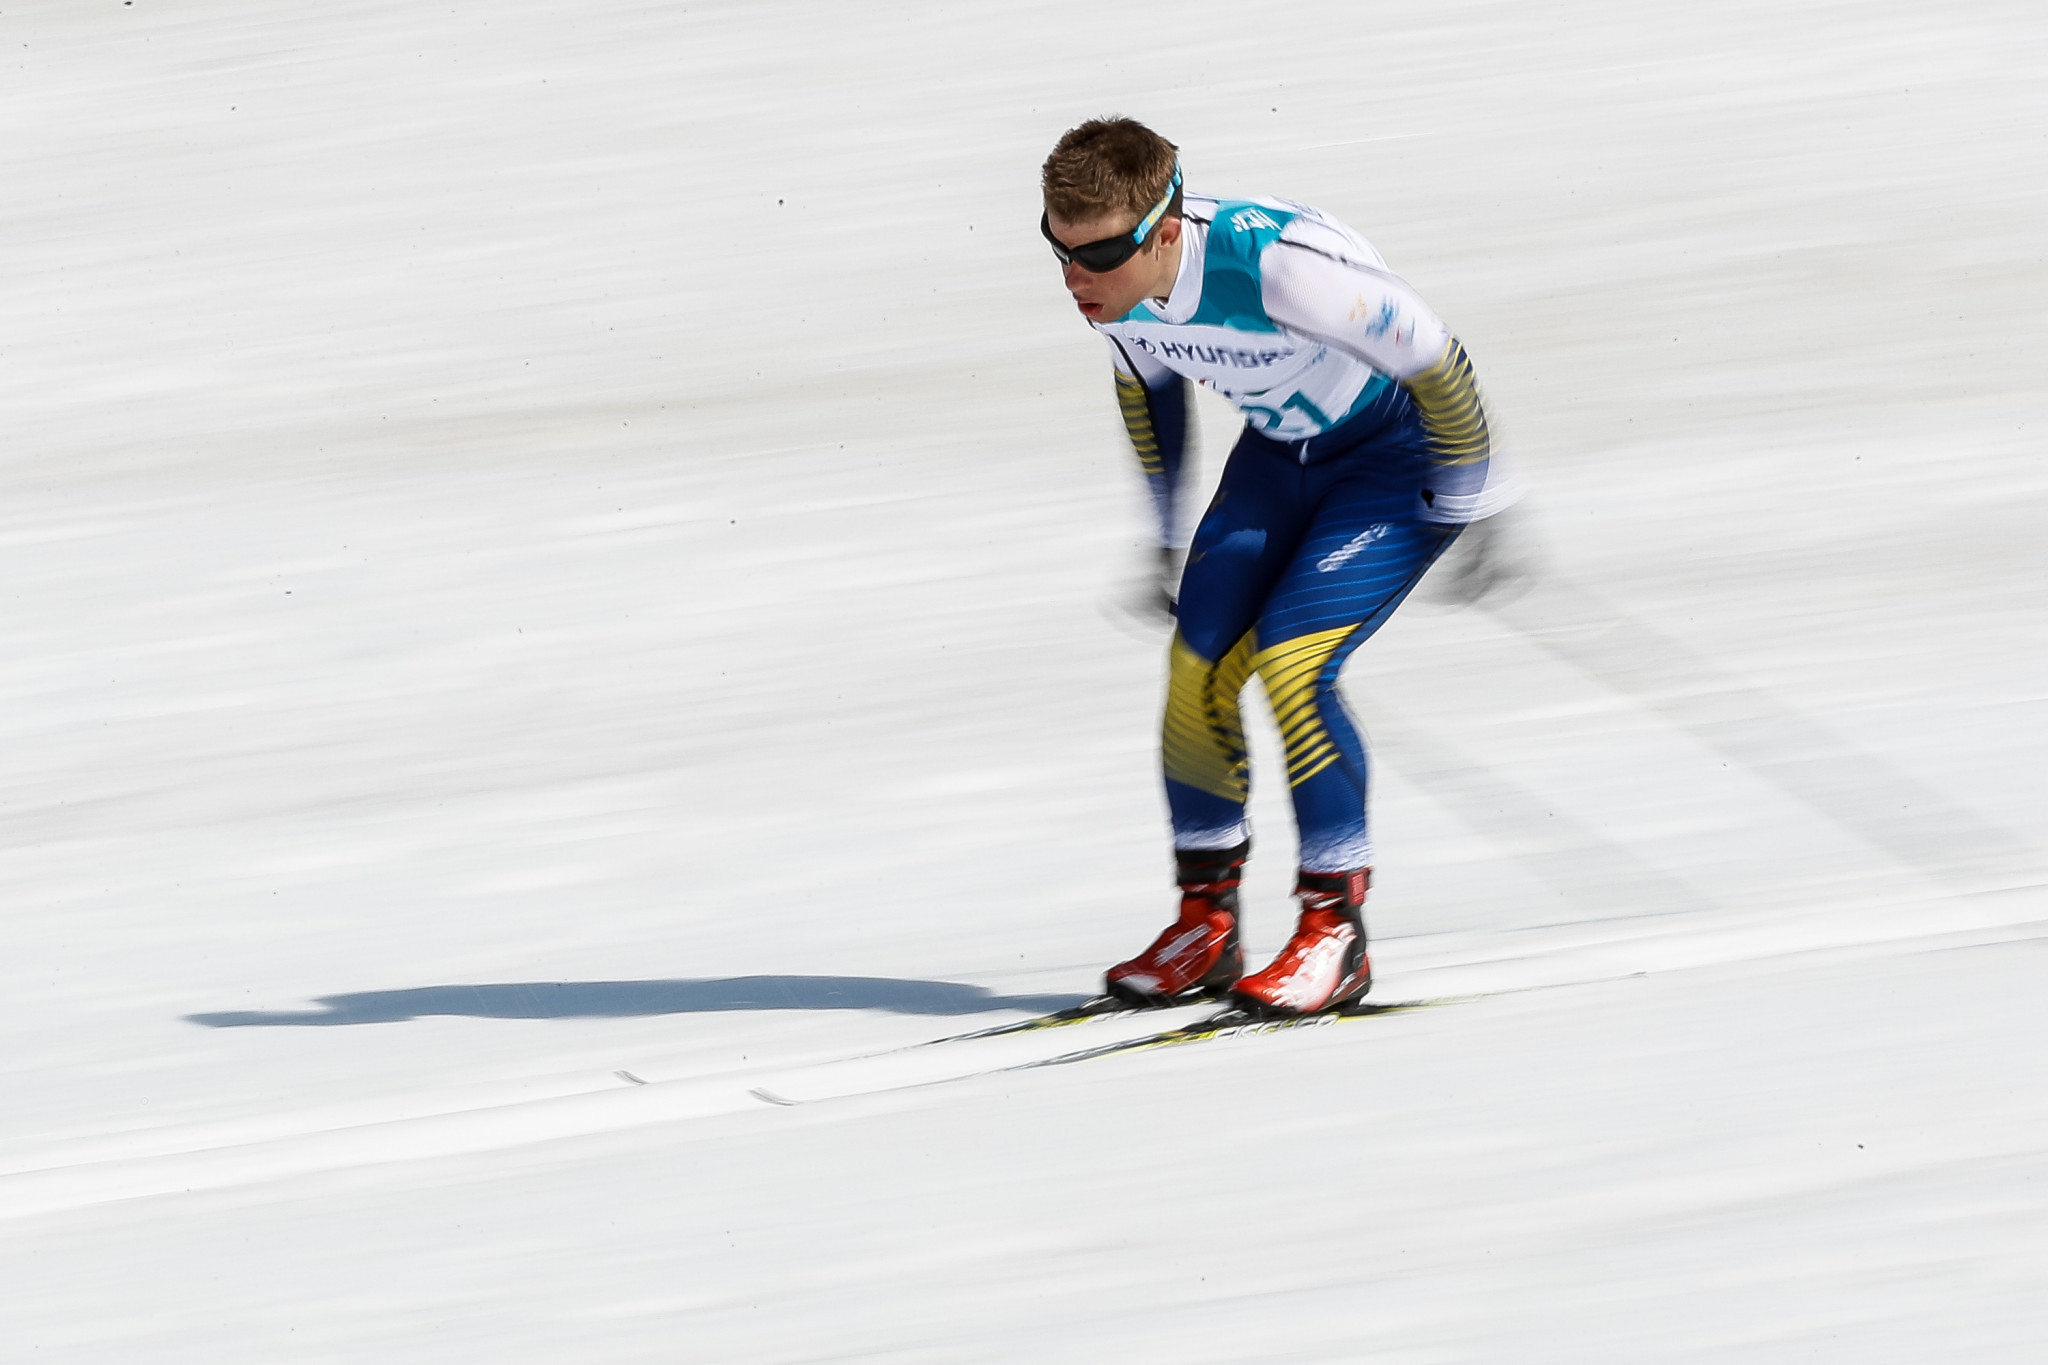 Modin completes hat-trick of gold medals at home World Para Nordic Skiing World Cup